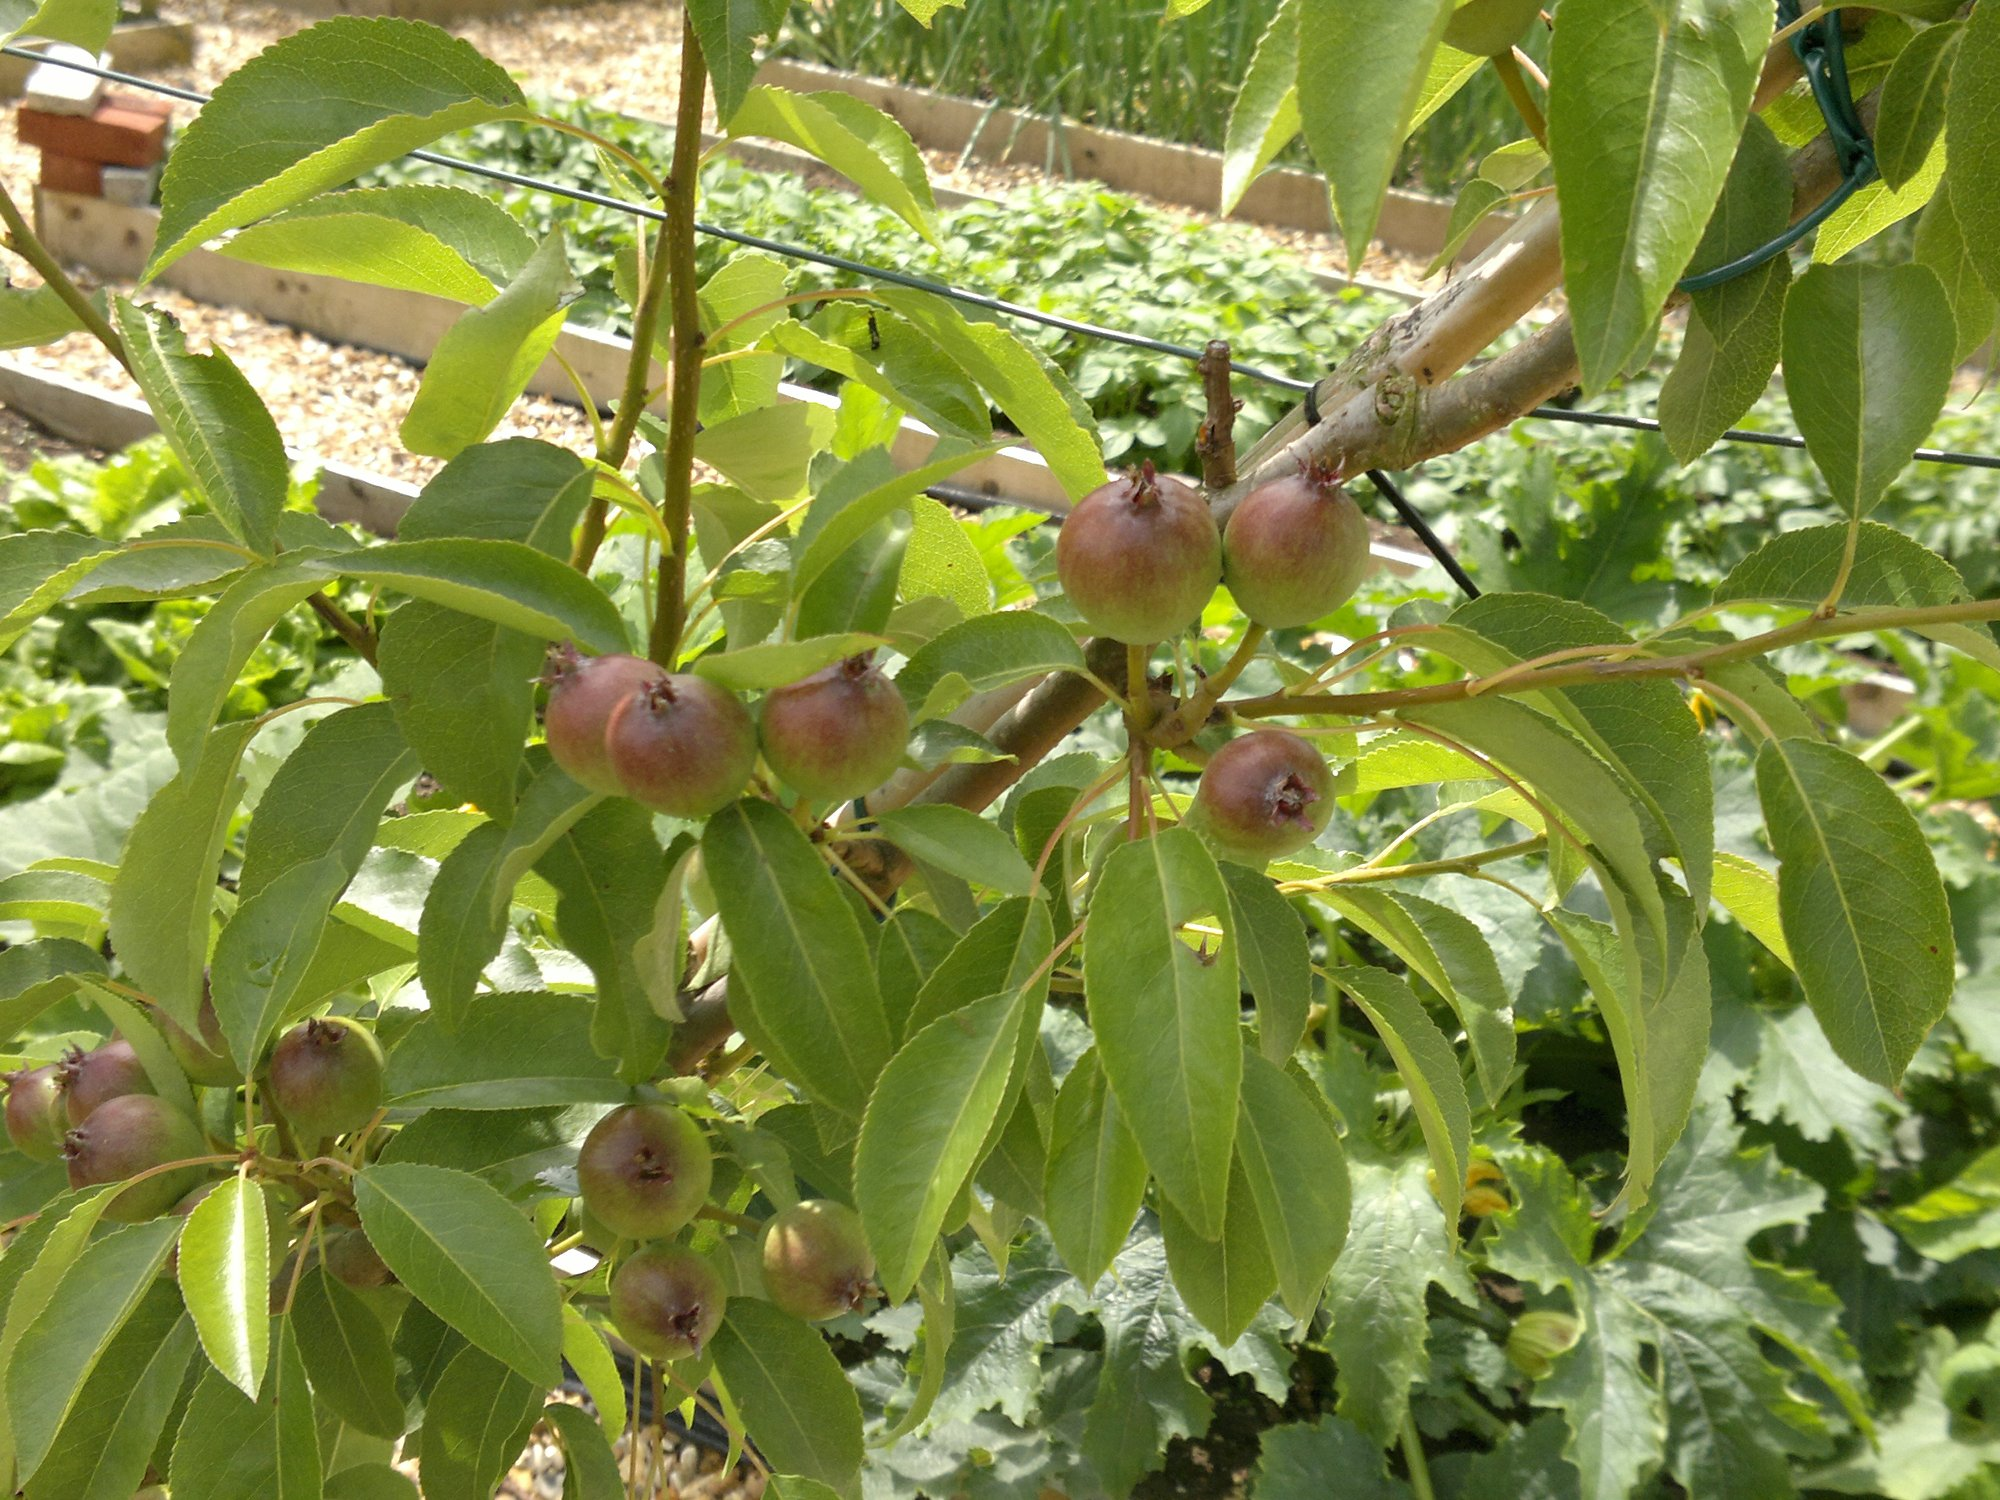 Early pears developing